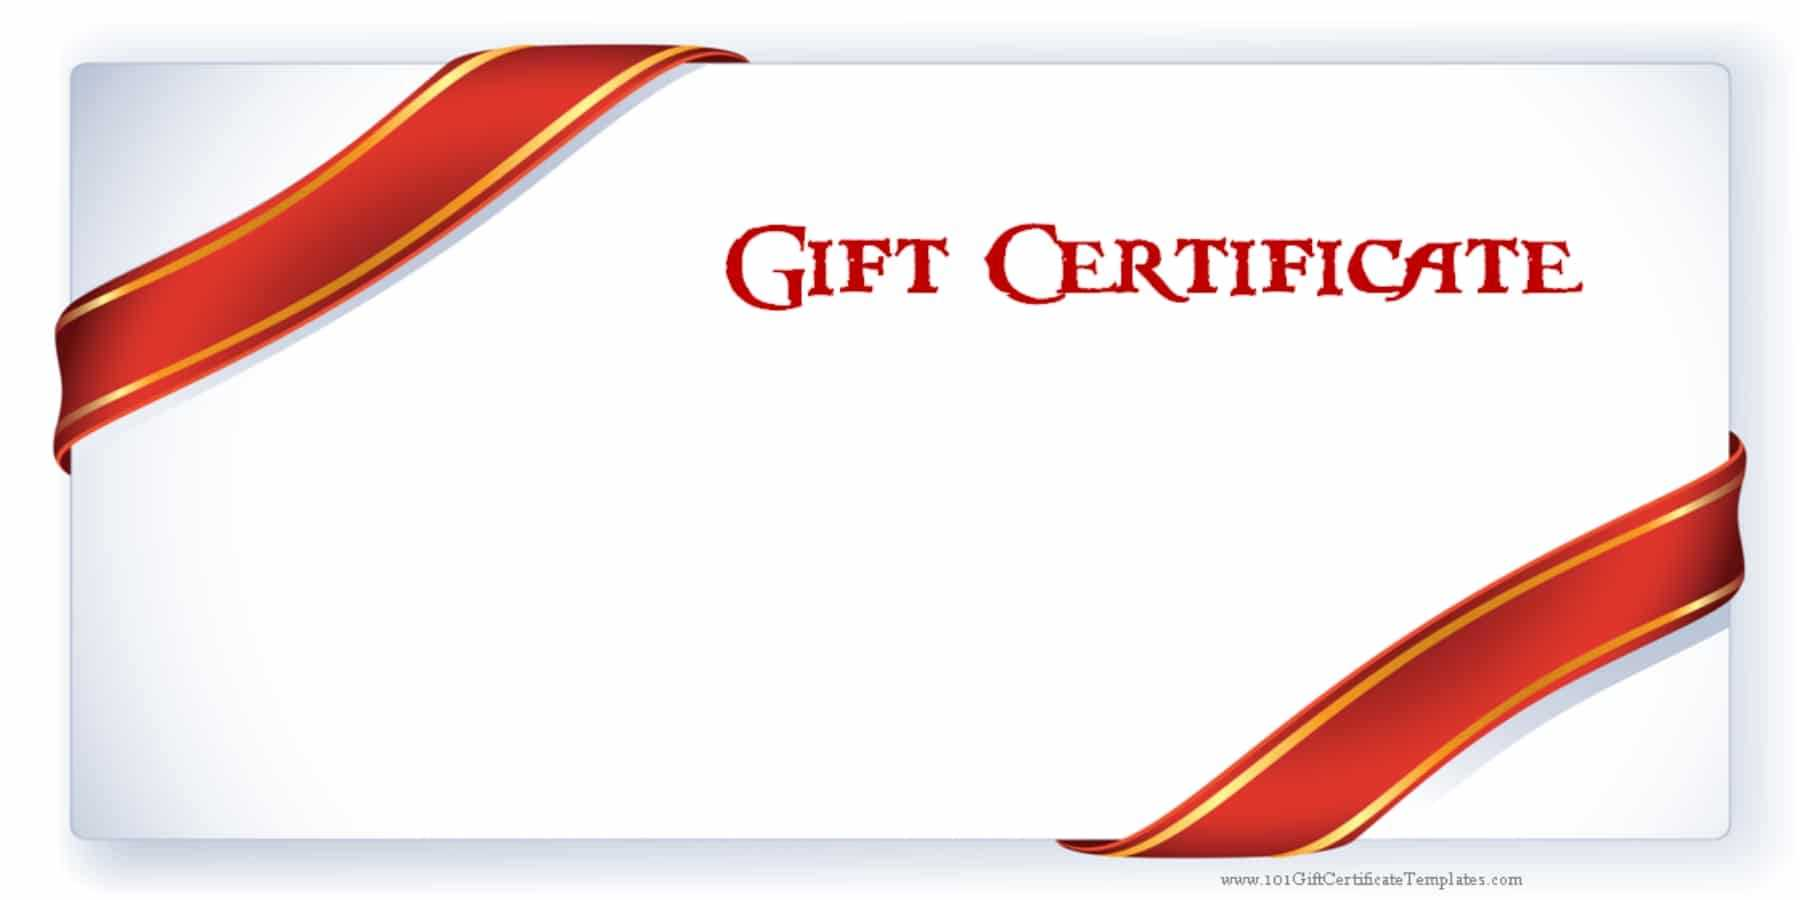 Printable Gift Certificate Templates in Dinner Certificate Template Free